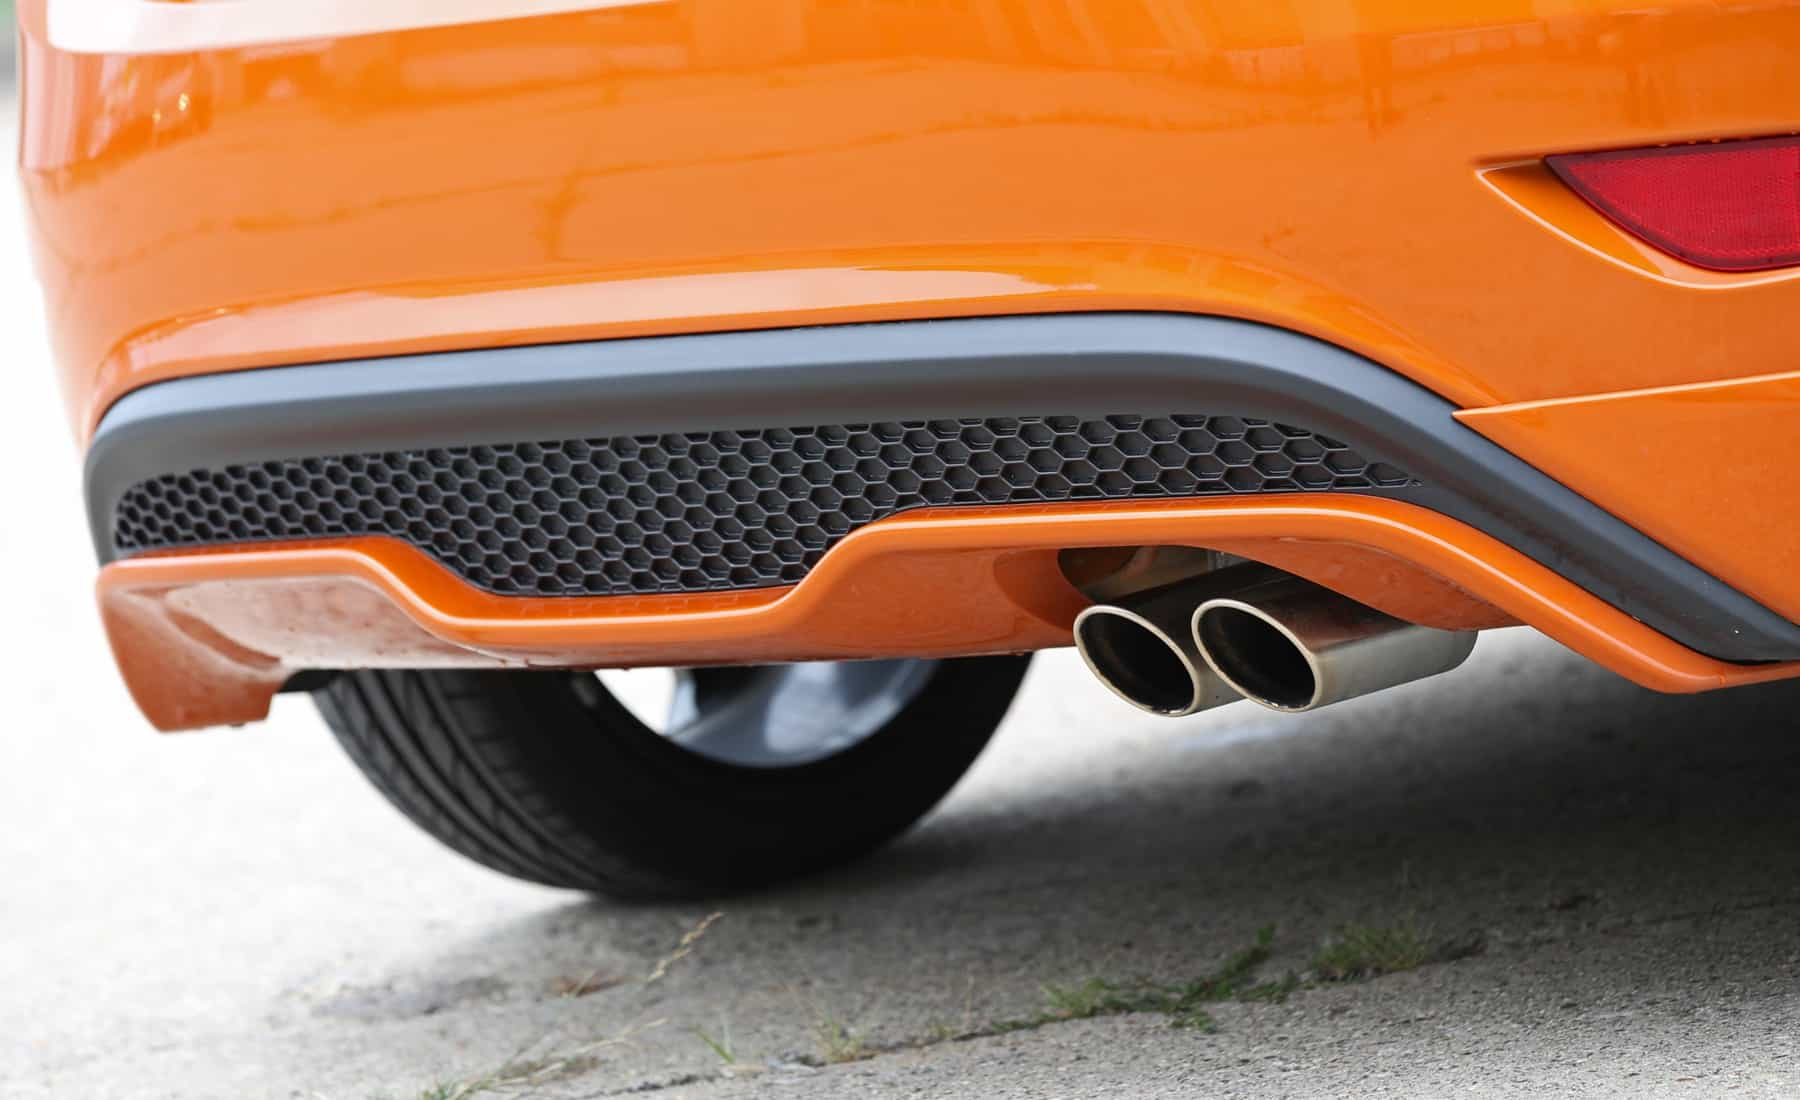 2017 Ford Fiesta ST Exterior View Rear Bumper And Exhaust (Photo 11 of 47)